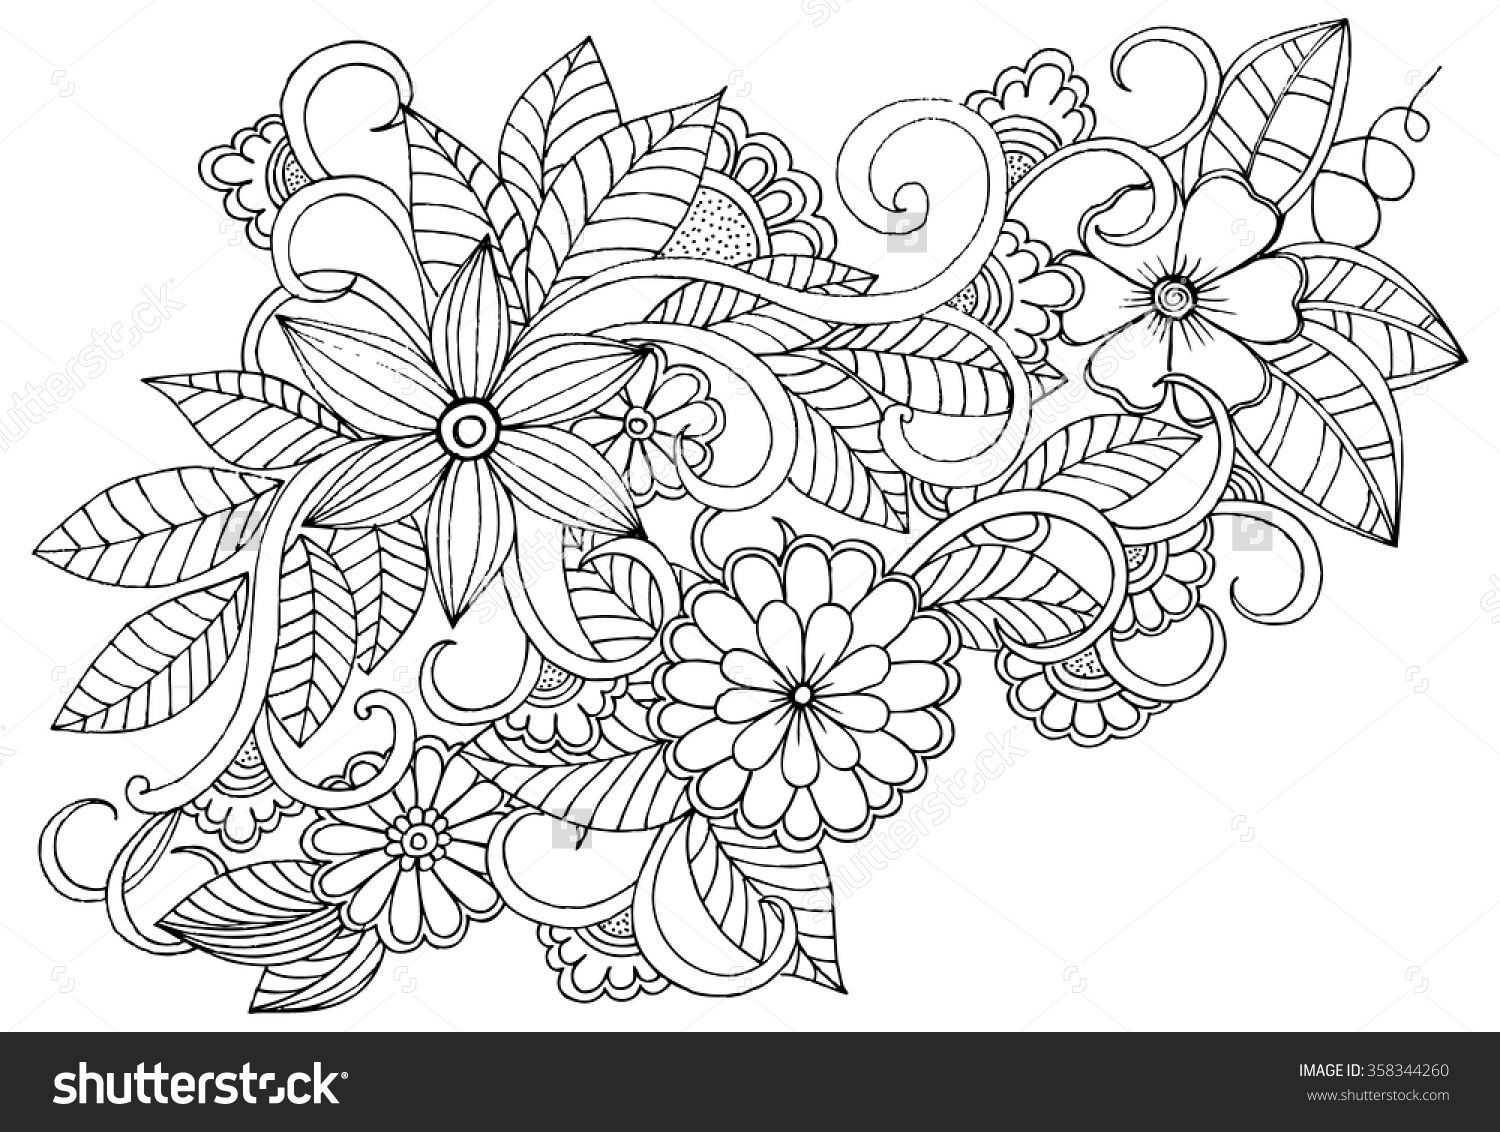 Doodle Floral Pattern In Black And White Page For Coloring Book Very Interesting And Relaxing